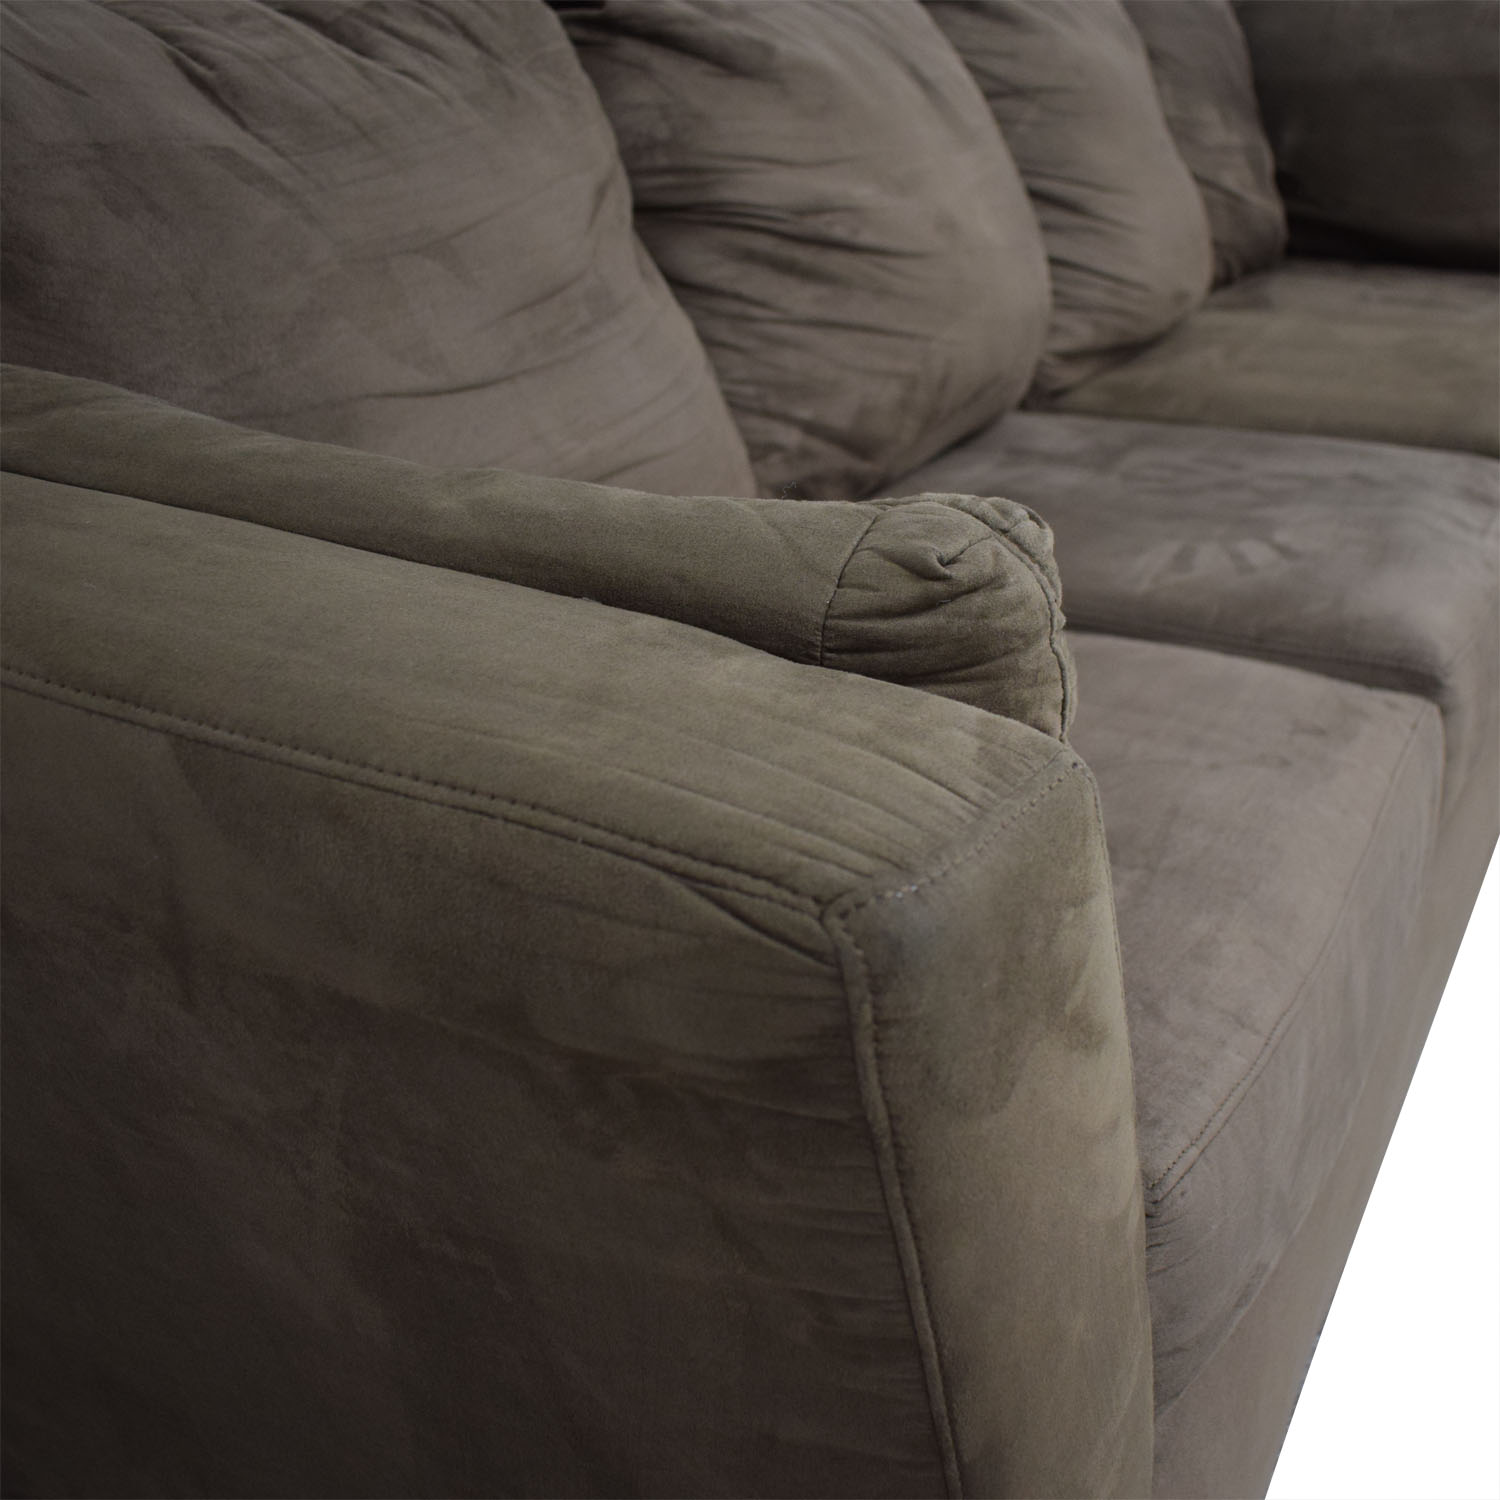 Libre II Sectional Sofa price